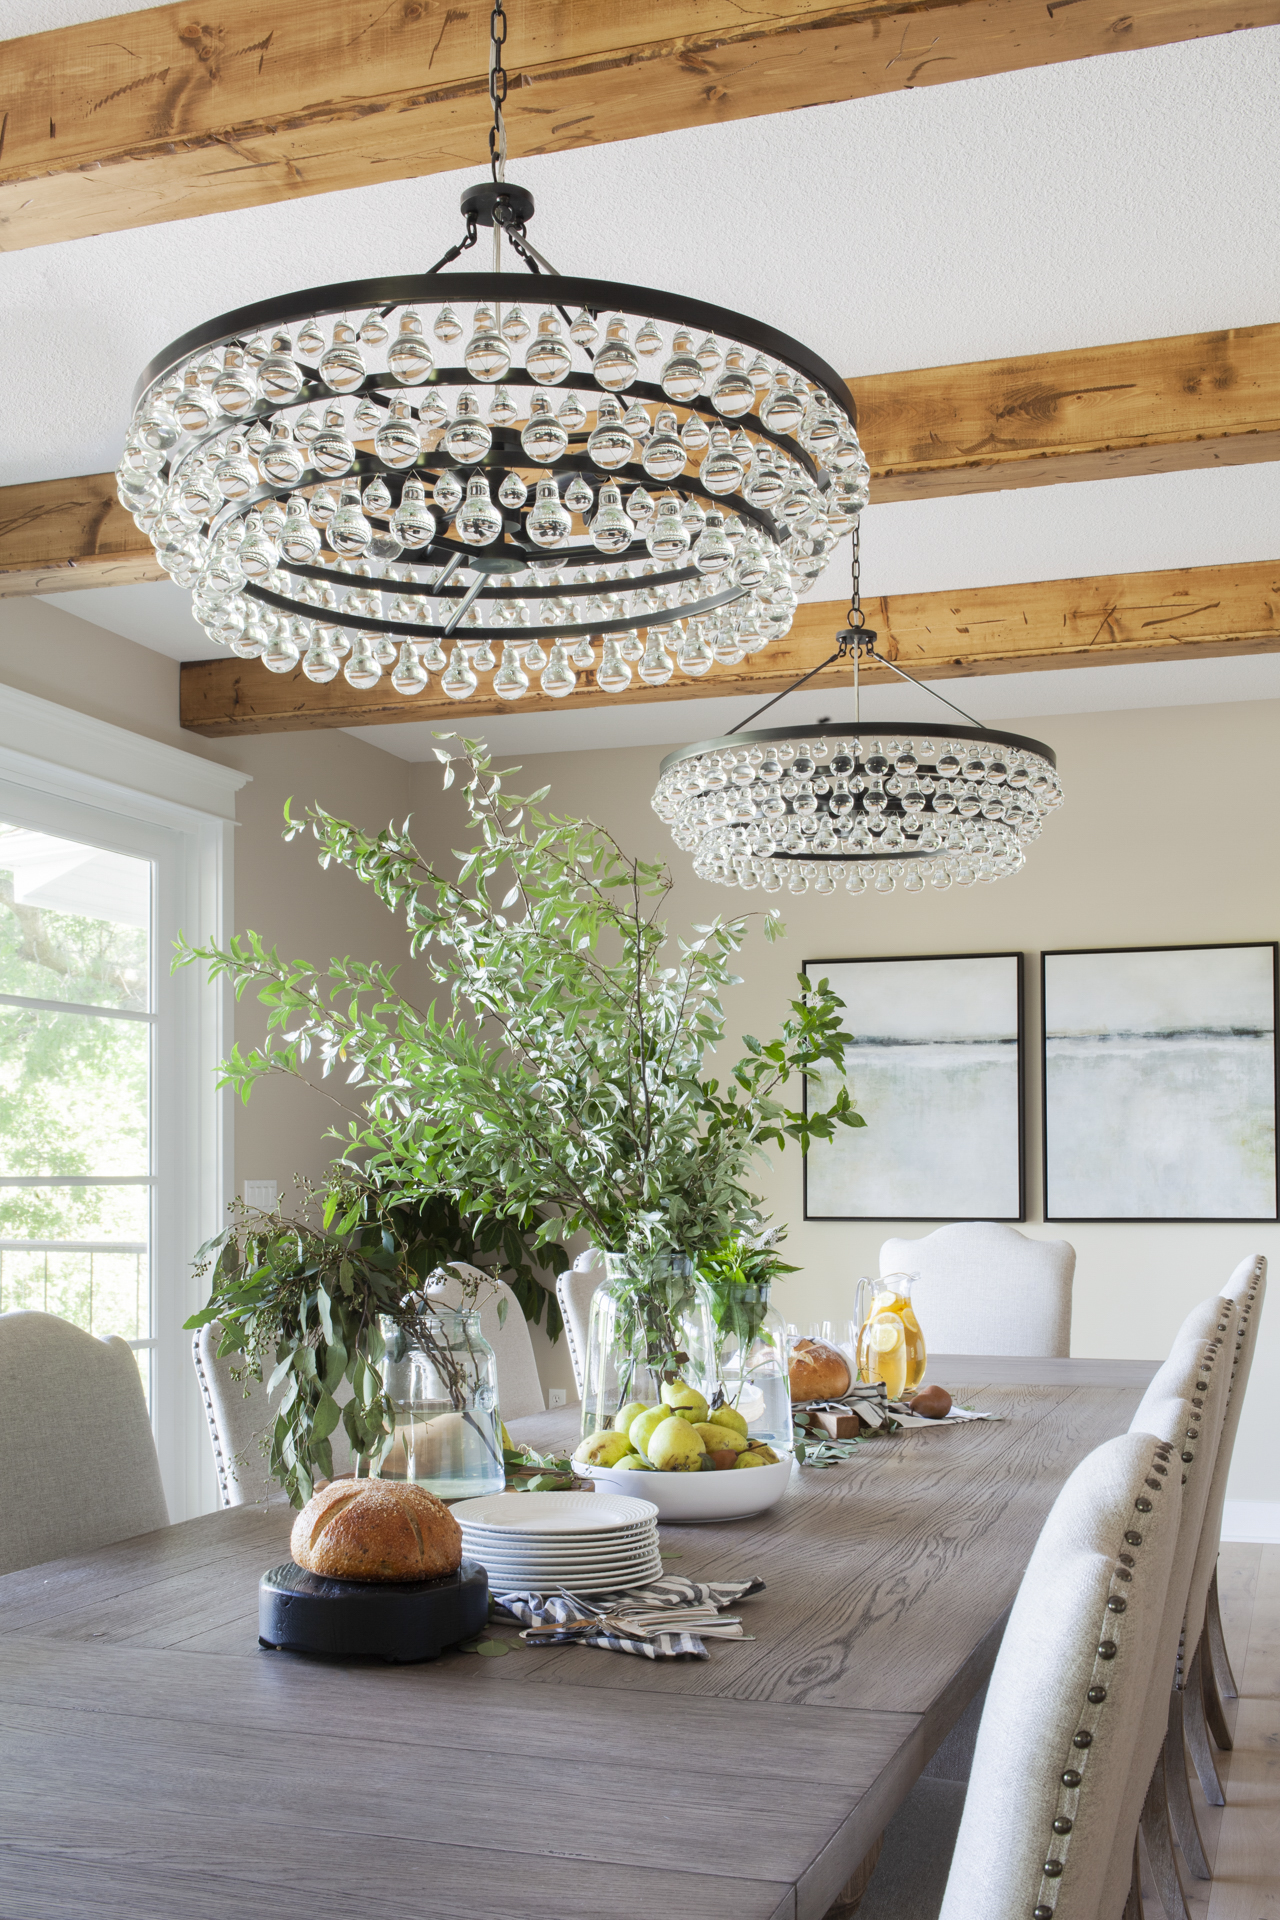 before-and-after-home-reveal-scout-and-nimble-lake-view-luxe-country-interior-design-dining-room-abstract-art-glass-chandelier-long-table-48.jpg